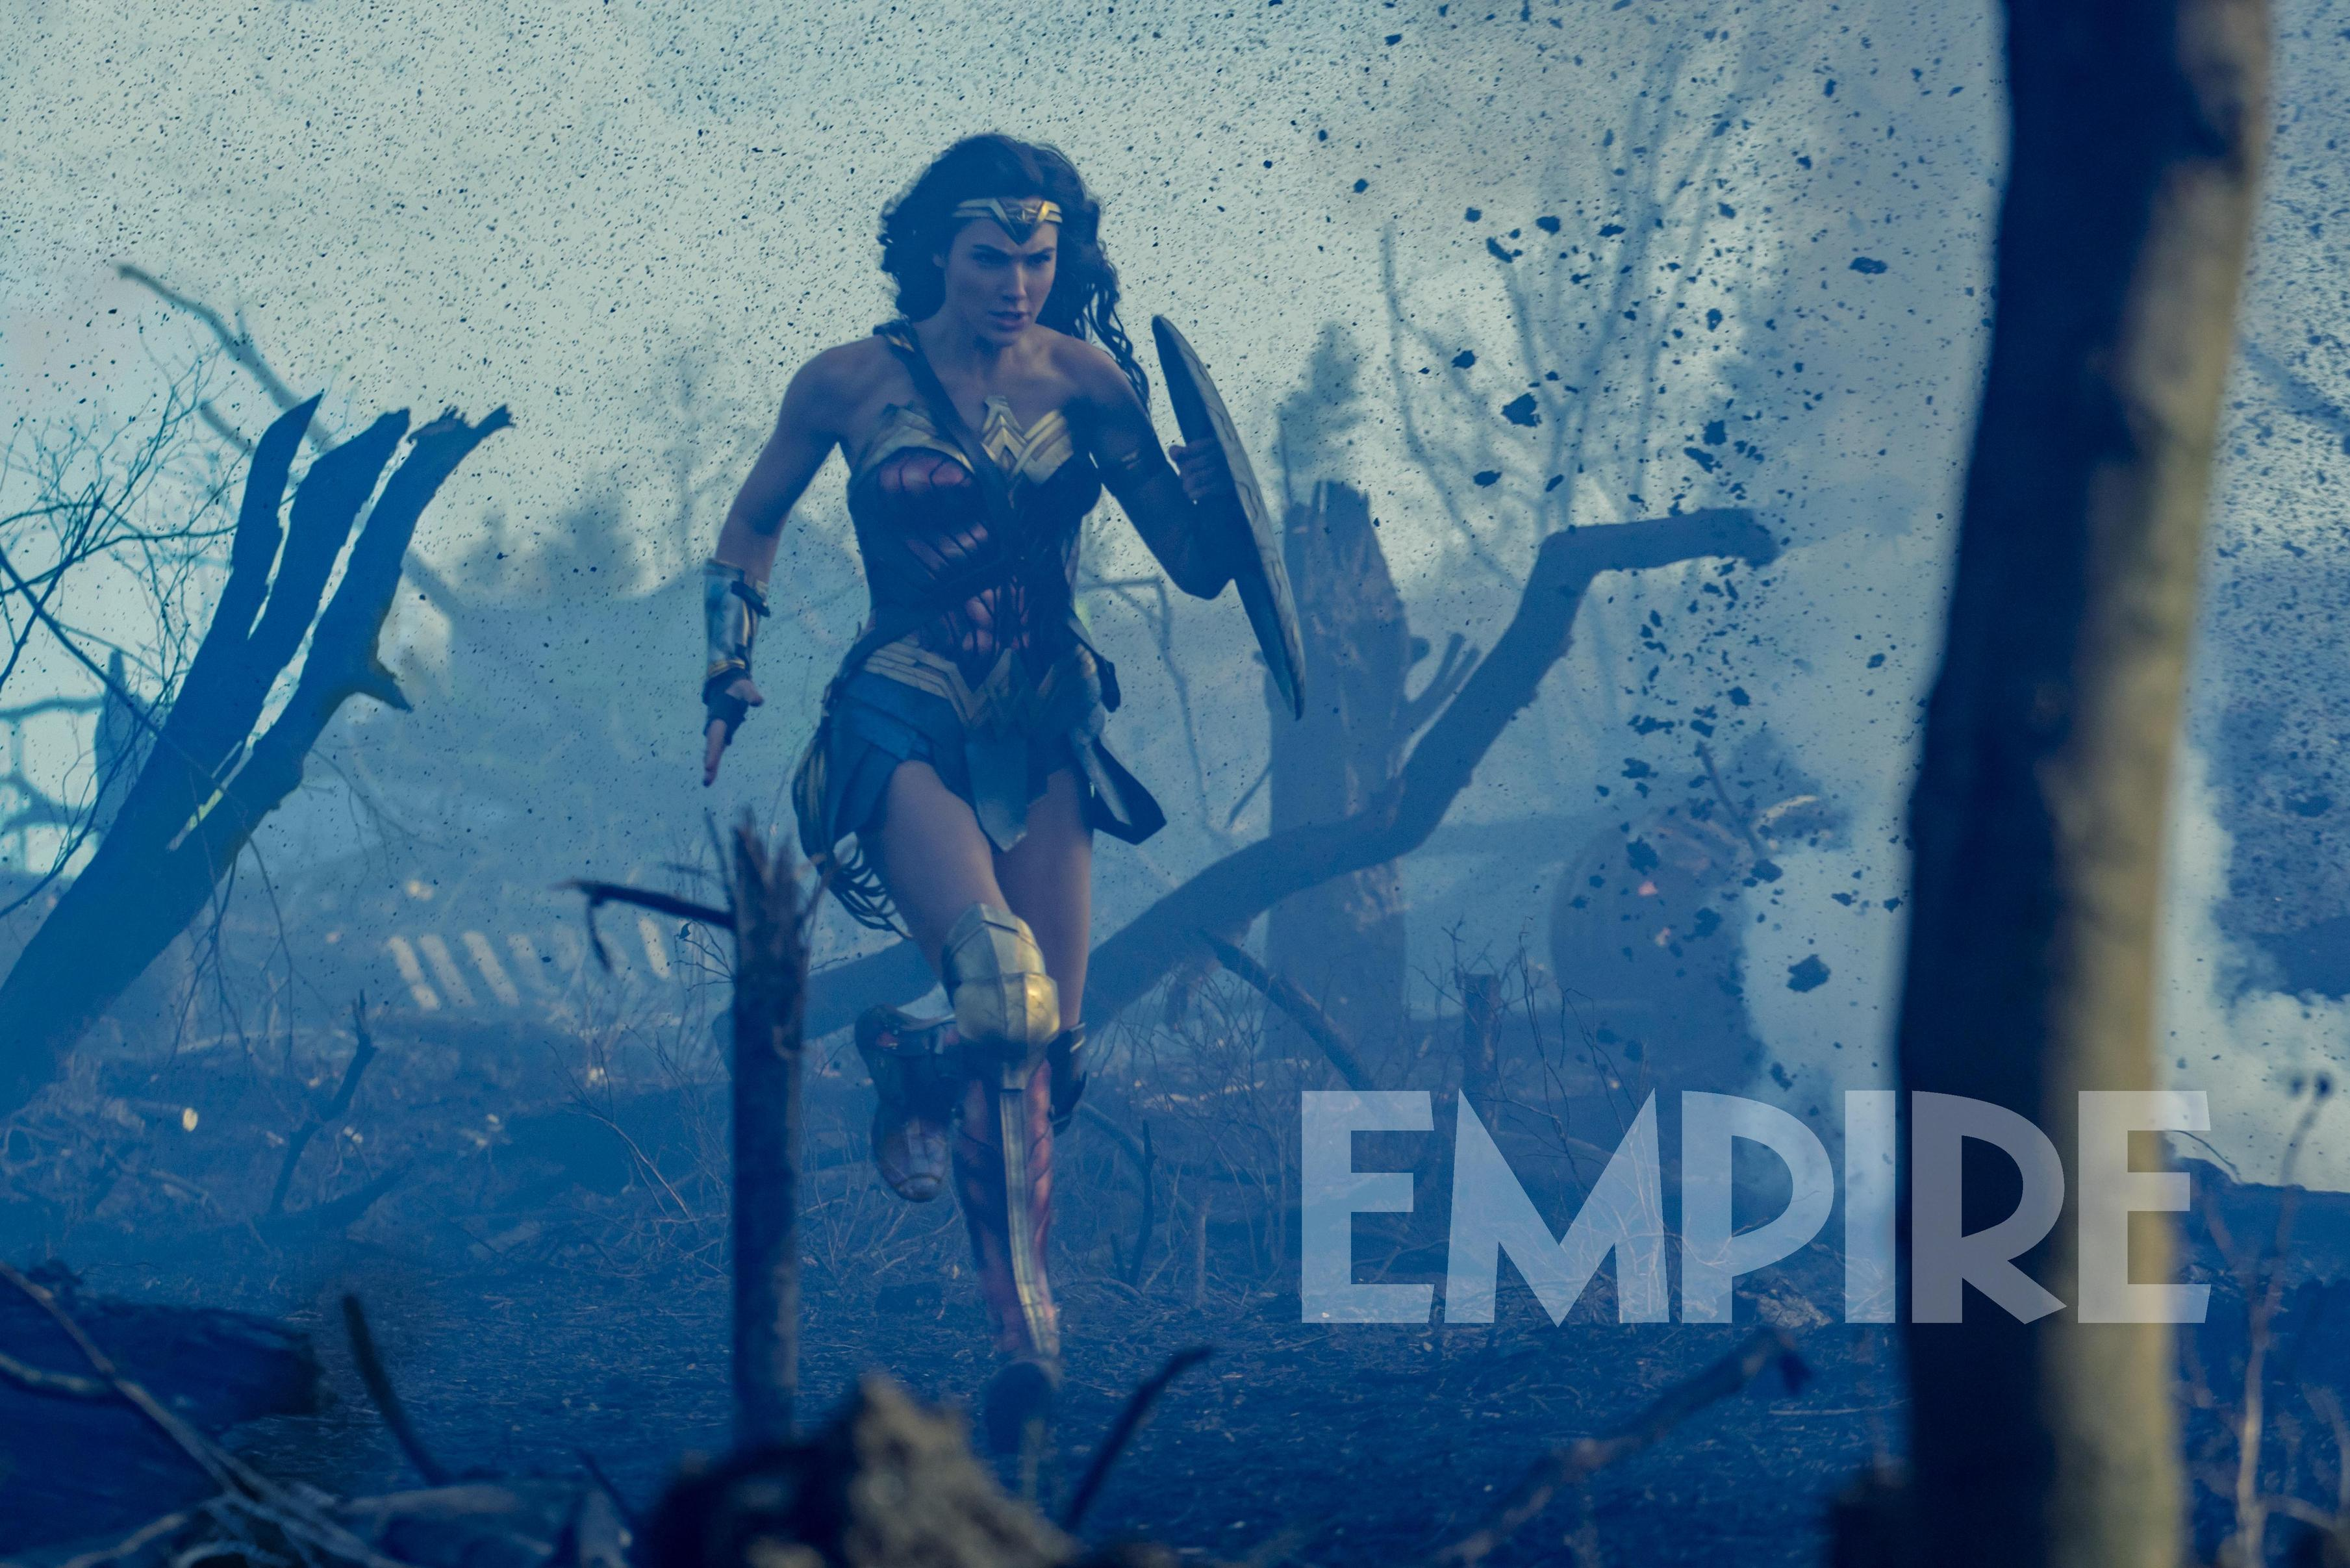 Wonder Woman: Exclusive, Explosive New Look At Gal Gadot